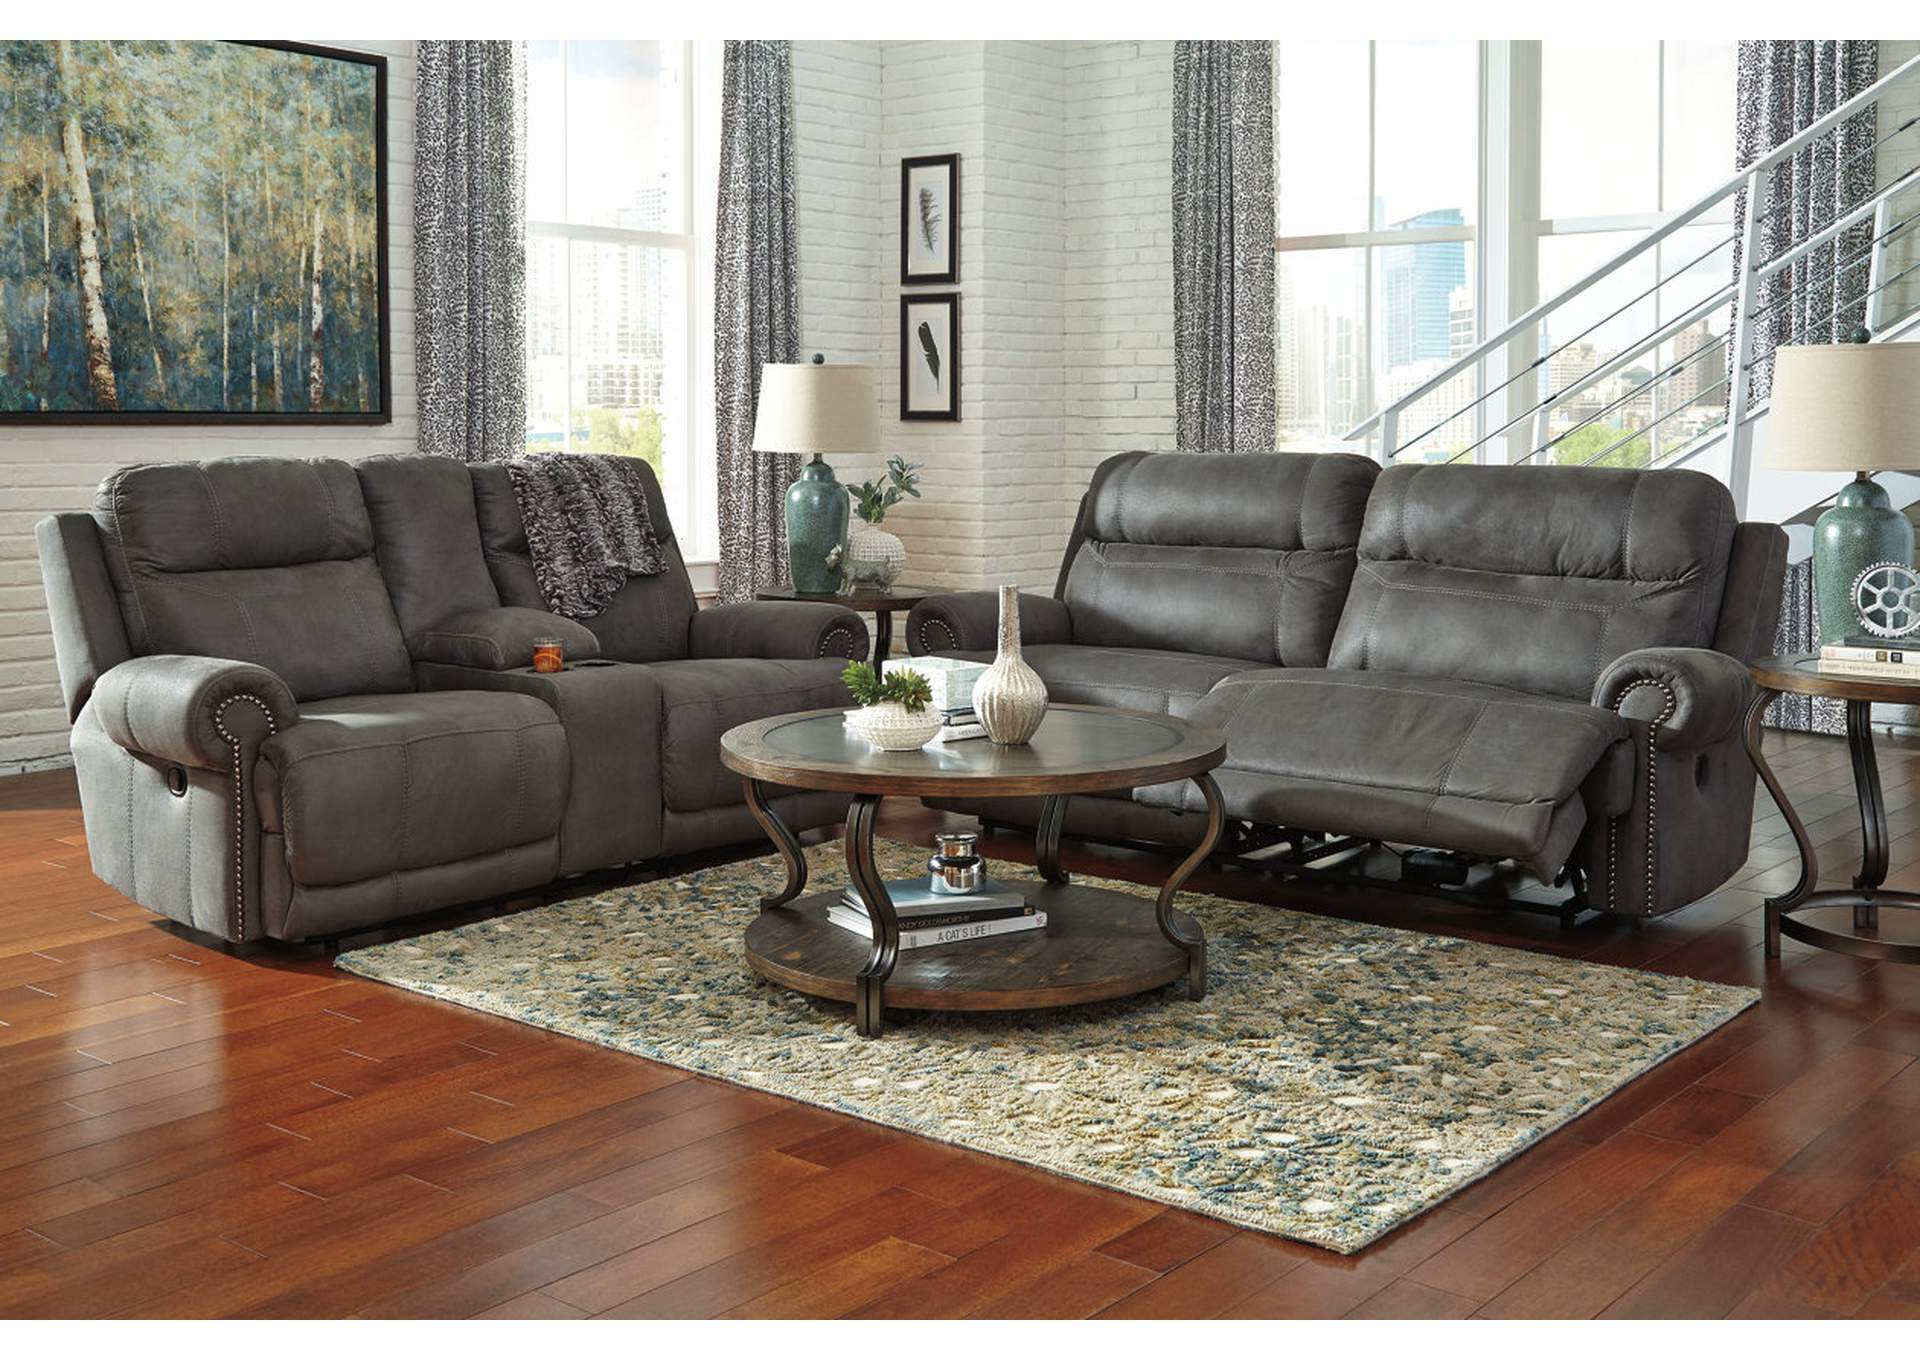 Austere Gray 11 Seat Reclining Sofa & Loveseat Ridge Home